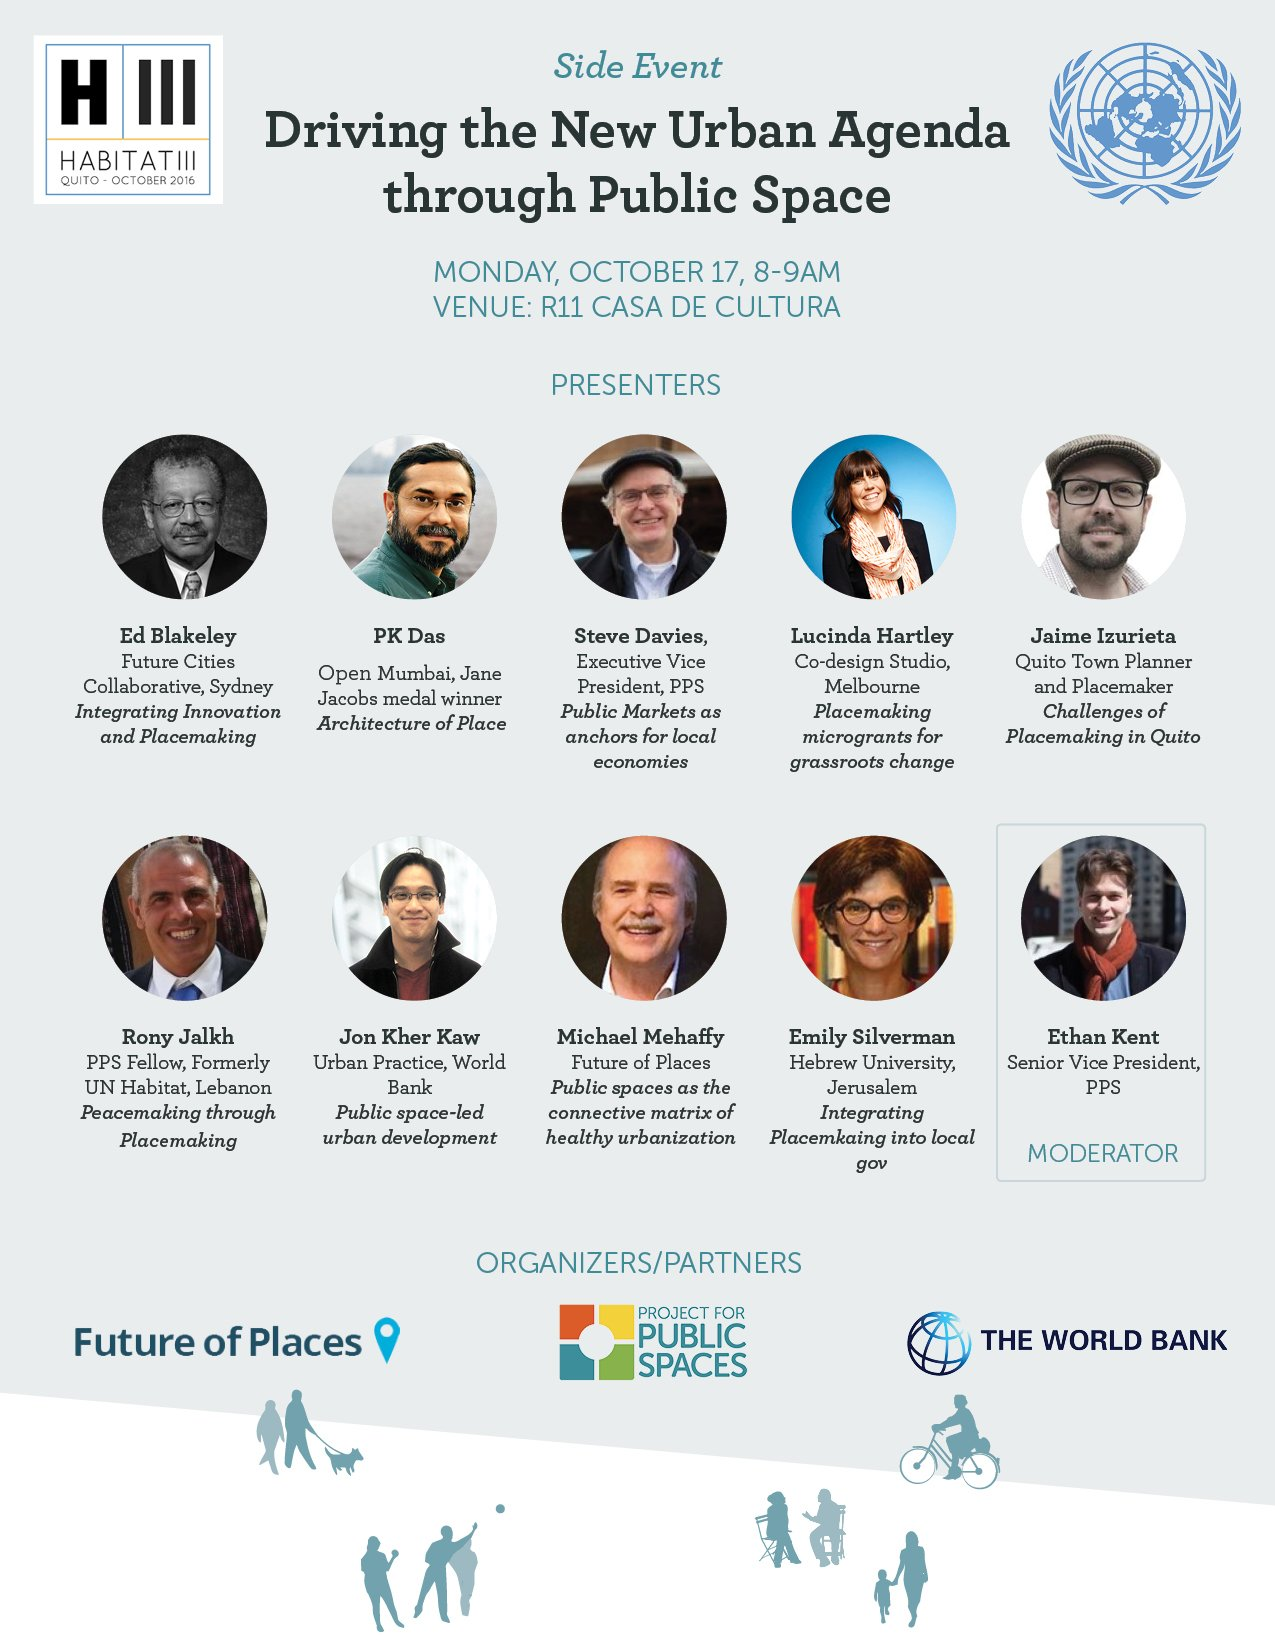 Follow #H3Places for our #Habitat3 side event w/ @lucindahartley @RonyJalkh @jonkherkaw @RonyJalkh @izurietavarea. #Placemaking #PublicSpace https://t.co/cV1psKMkQT